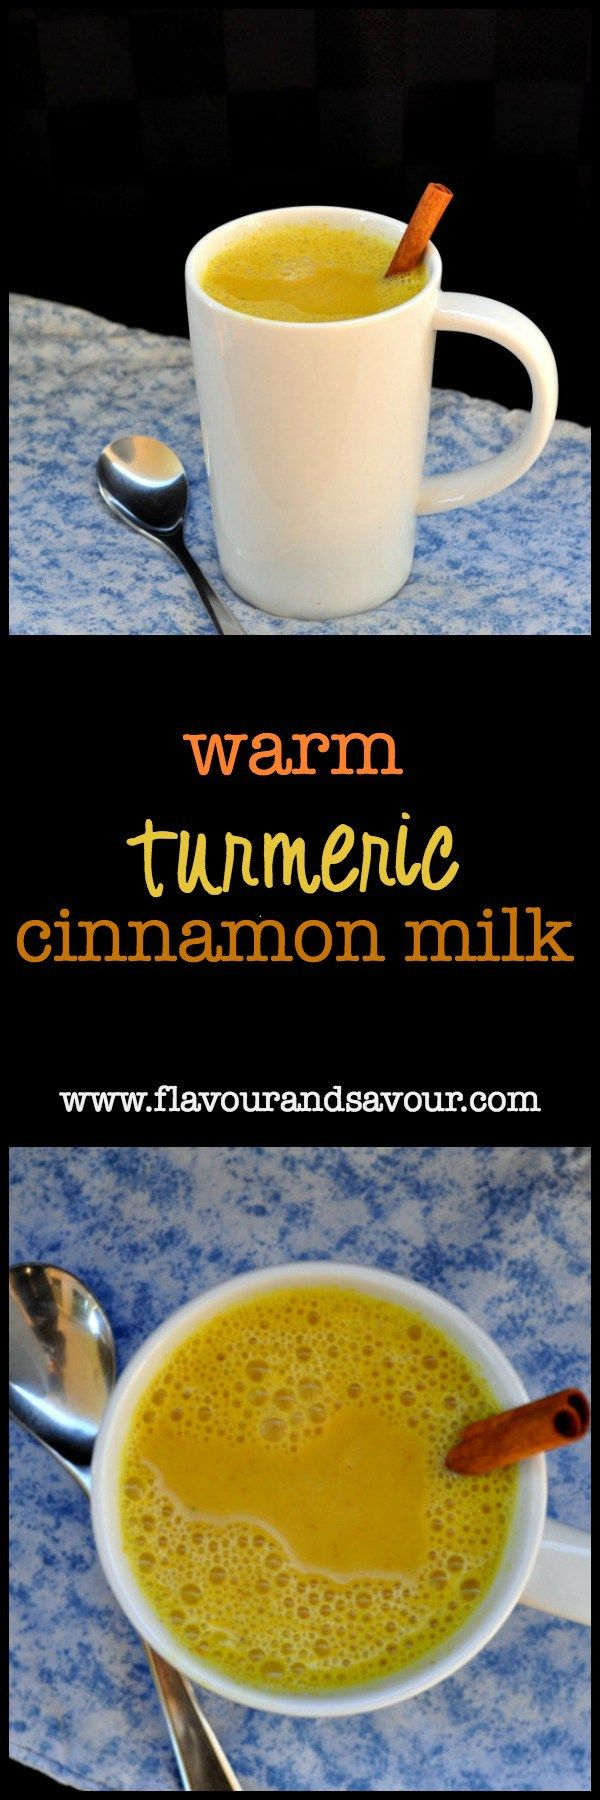 Warm Turmeric Cinnamon Milk |www.flavourandsavour.com #turmeric Can't sleep? Try this before bed.